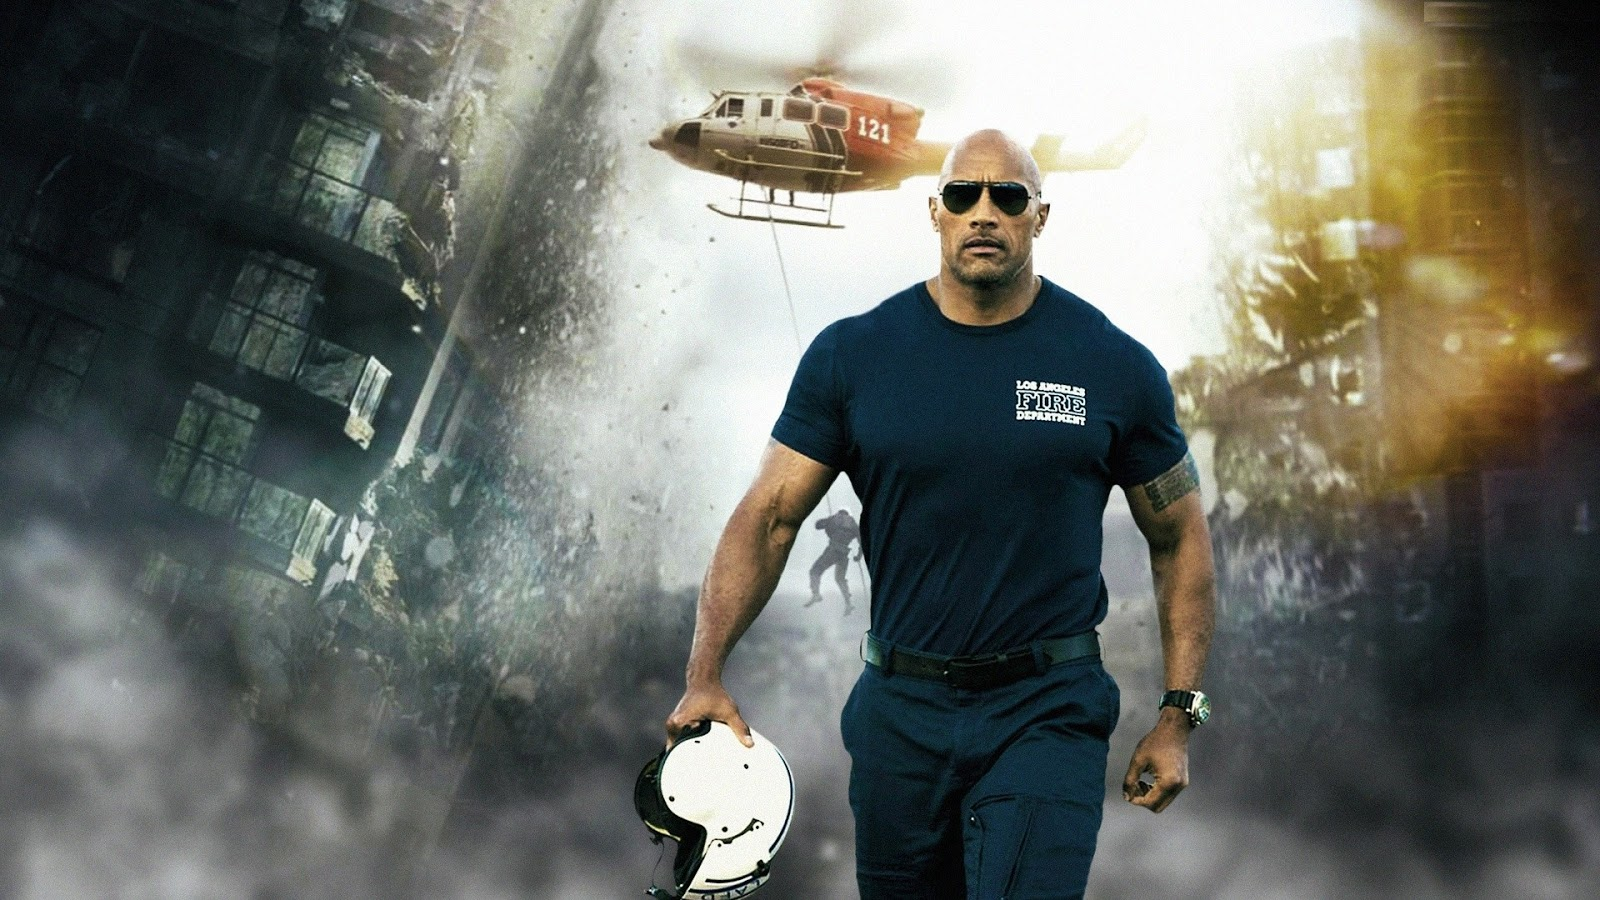 dwayne johnson google